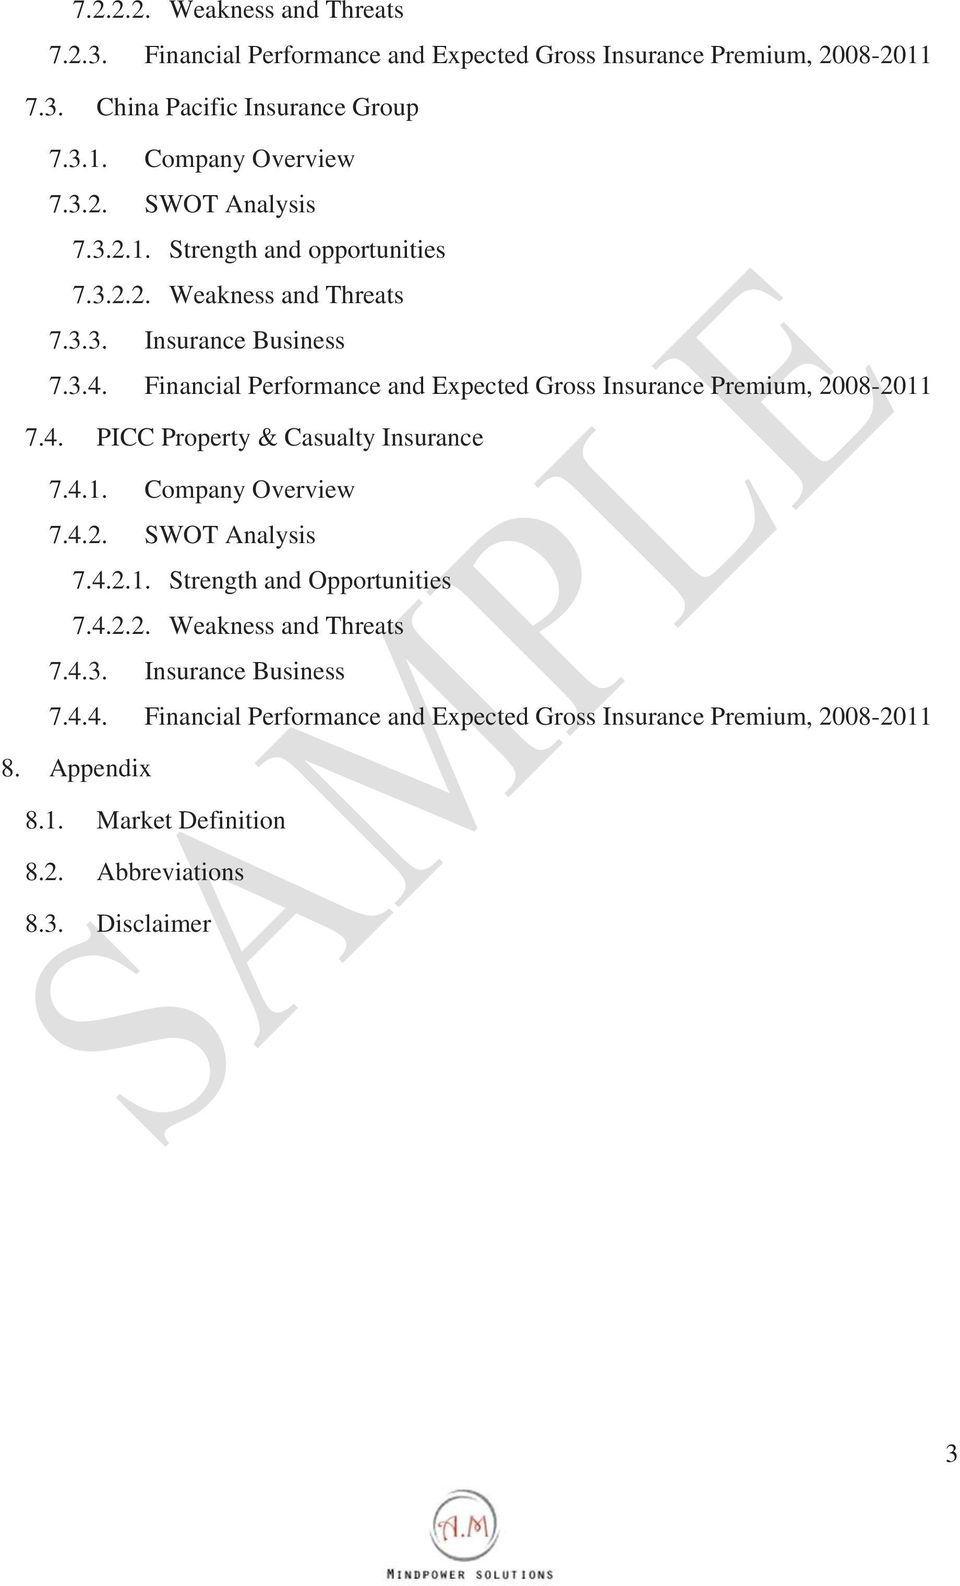 4.1. Company Overview 7.4.2. SWOT Analysis 7.4.2.1. Strength and Opportunities 7.4.2.2. Weakness and Threats 7.4.3. Insurance Business 7.4.4. Financial Performance and Expected Gross Insurance Premium, 2008-2011 8.